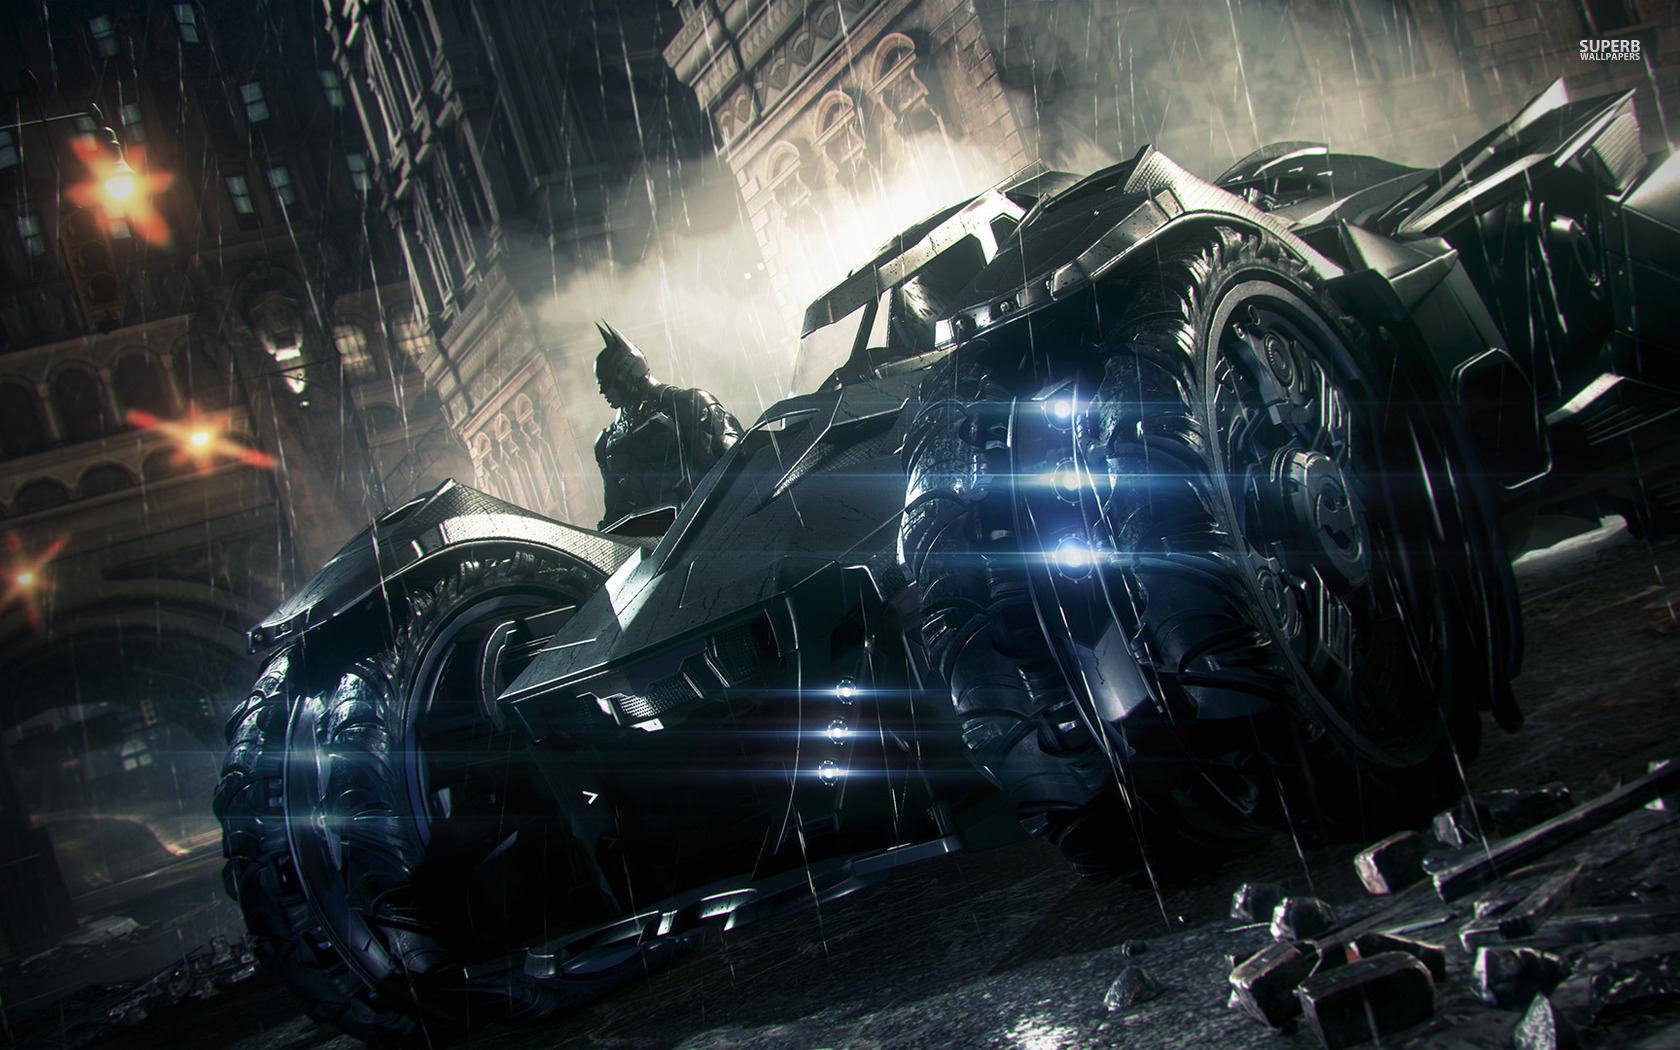 Batman Arkham Knight Wallpaper HD Wide Screen Wallpaper 1080p2K4K 1680x1050